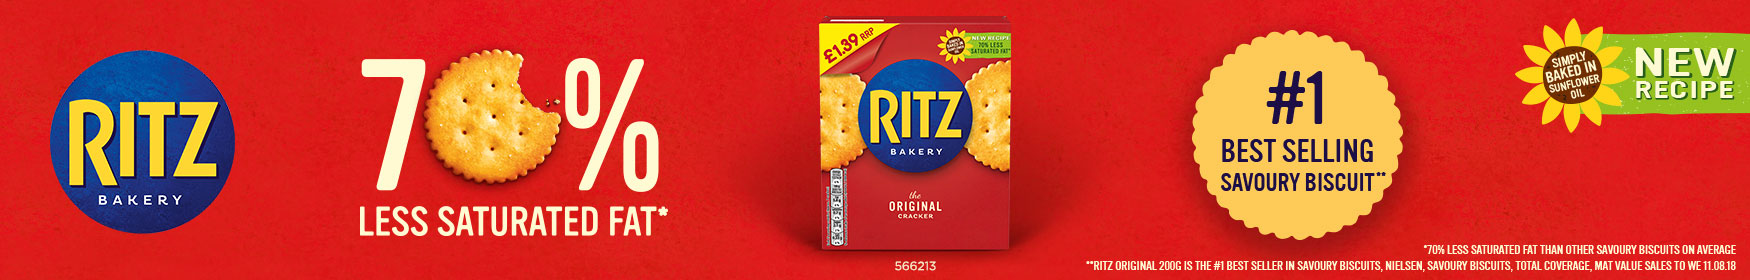 Ritz - 70% less saturated fat